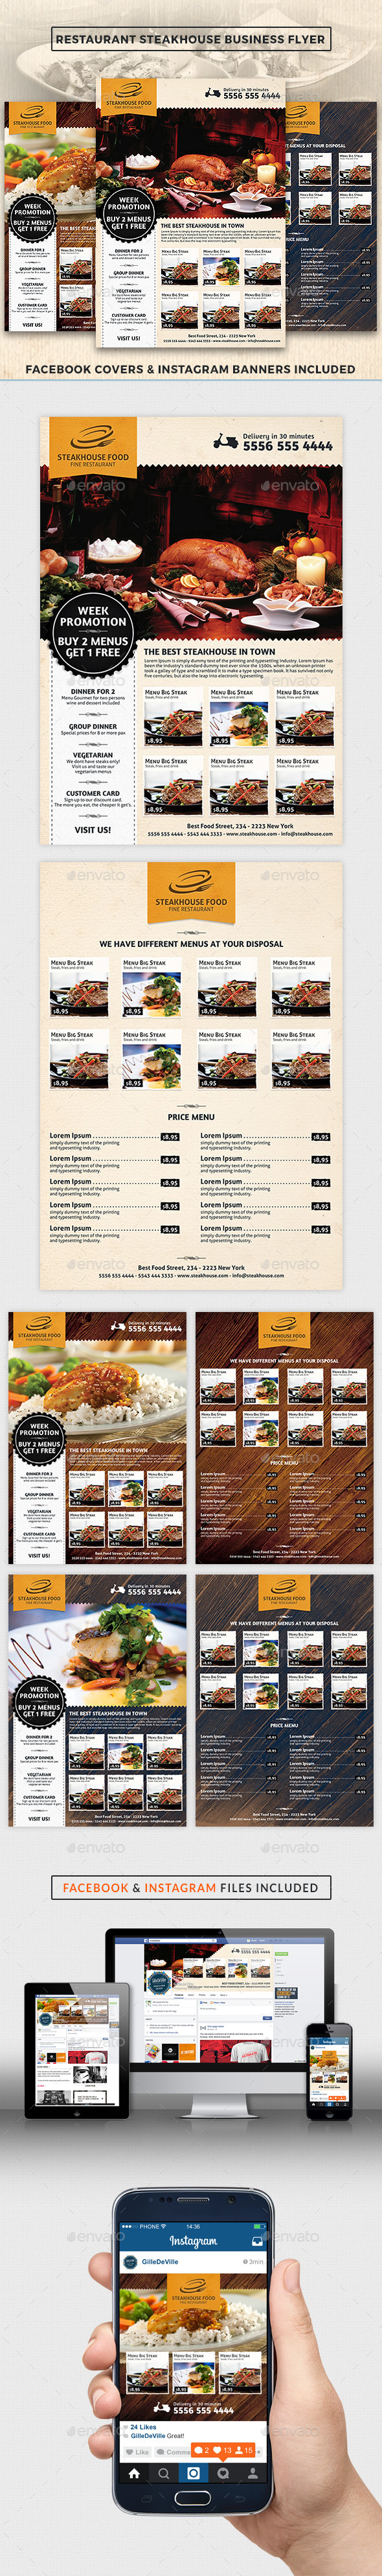 Restaurant SteakHouse Advertising Business Flyer